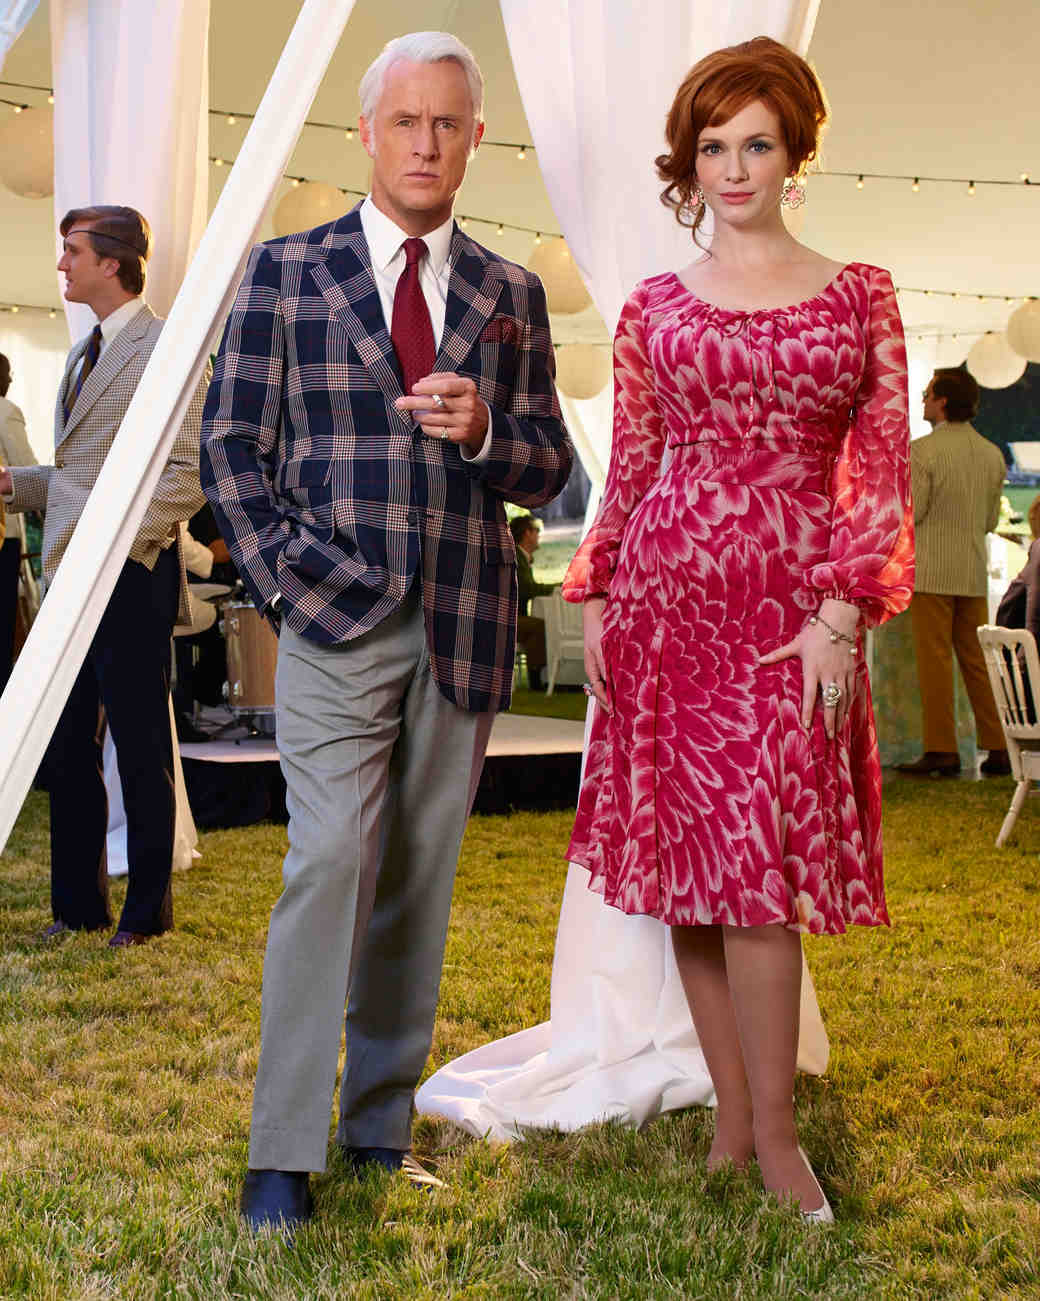 mad-men-wedding-roger-joan-0315.jpg